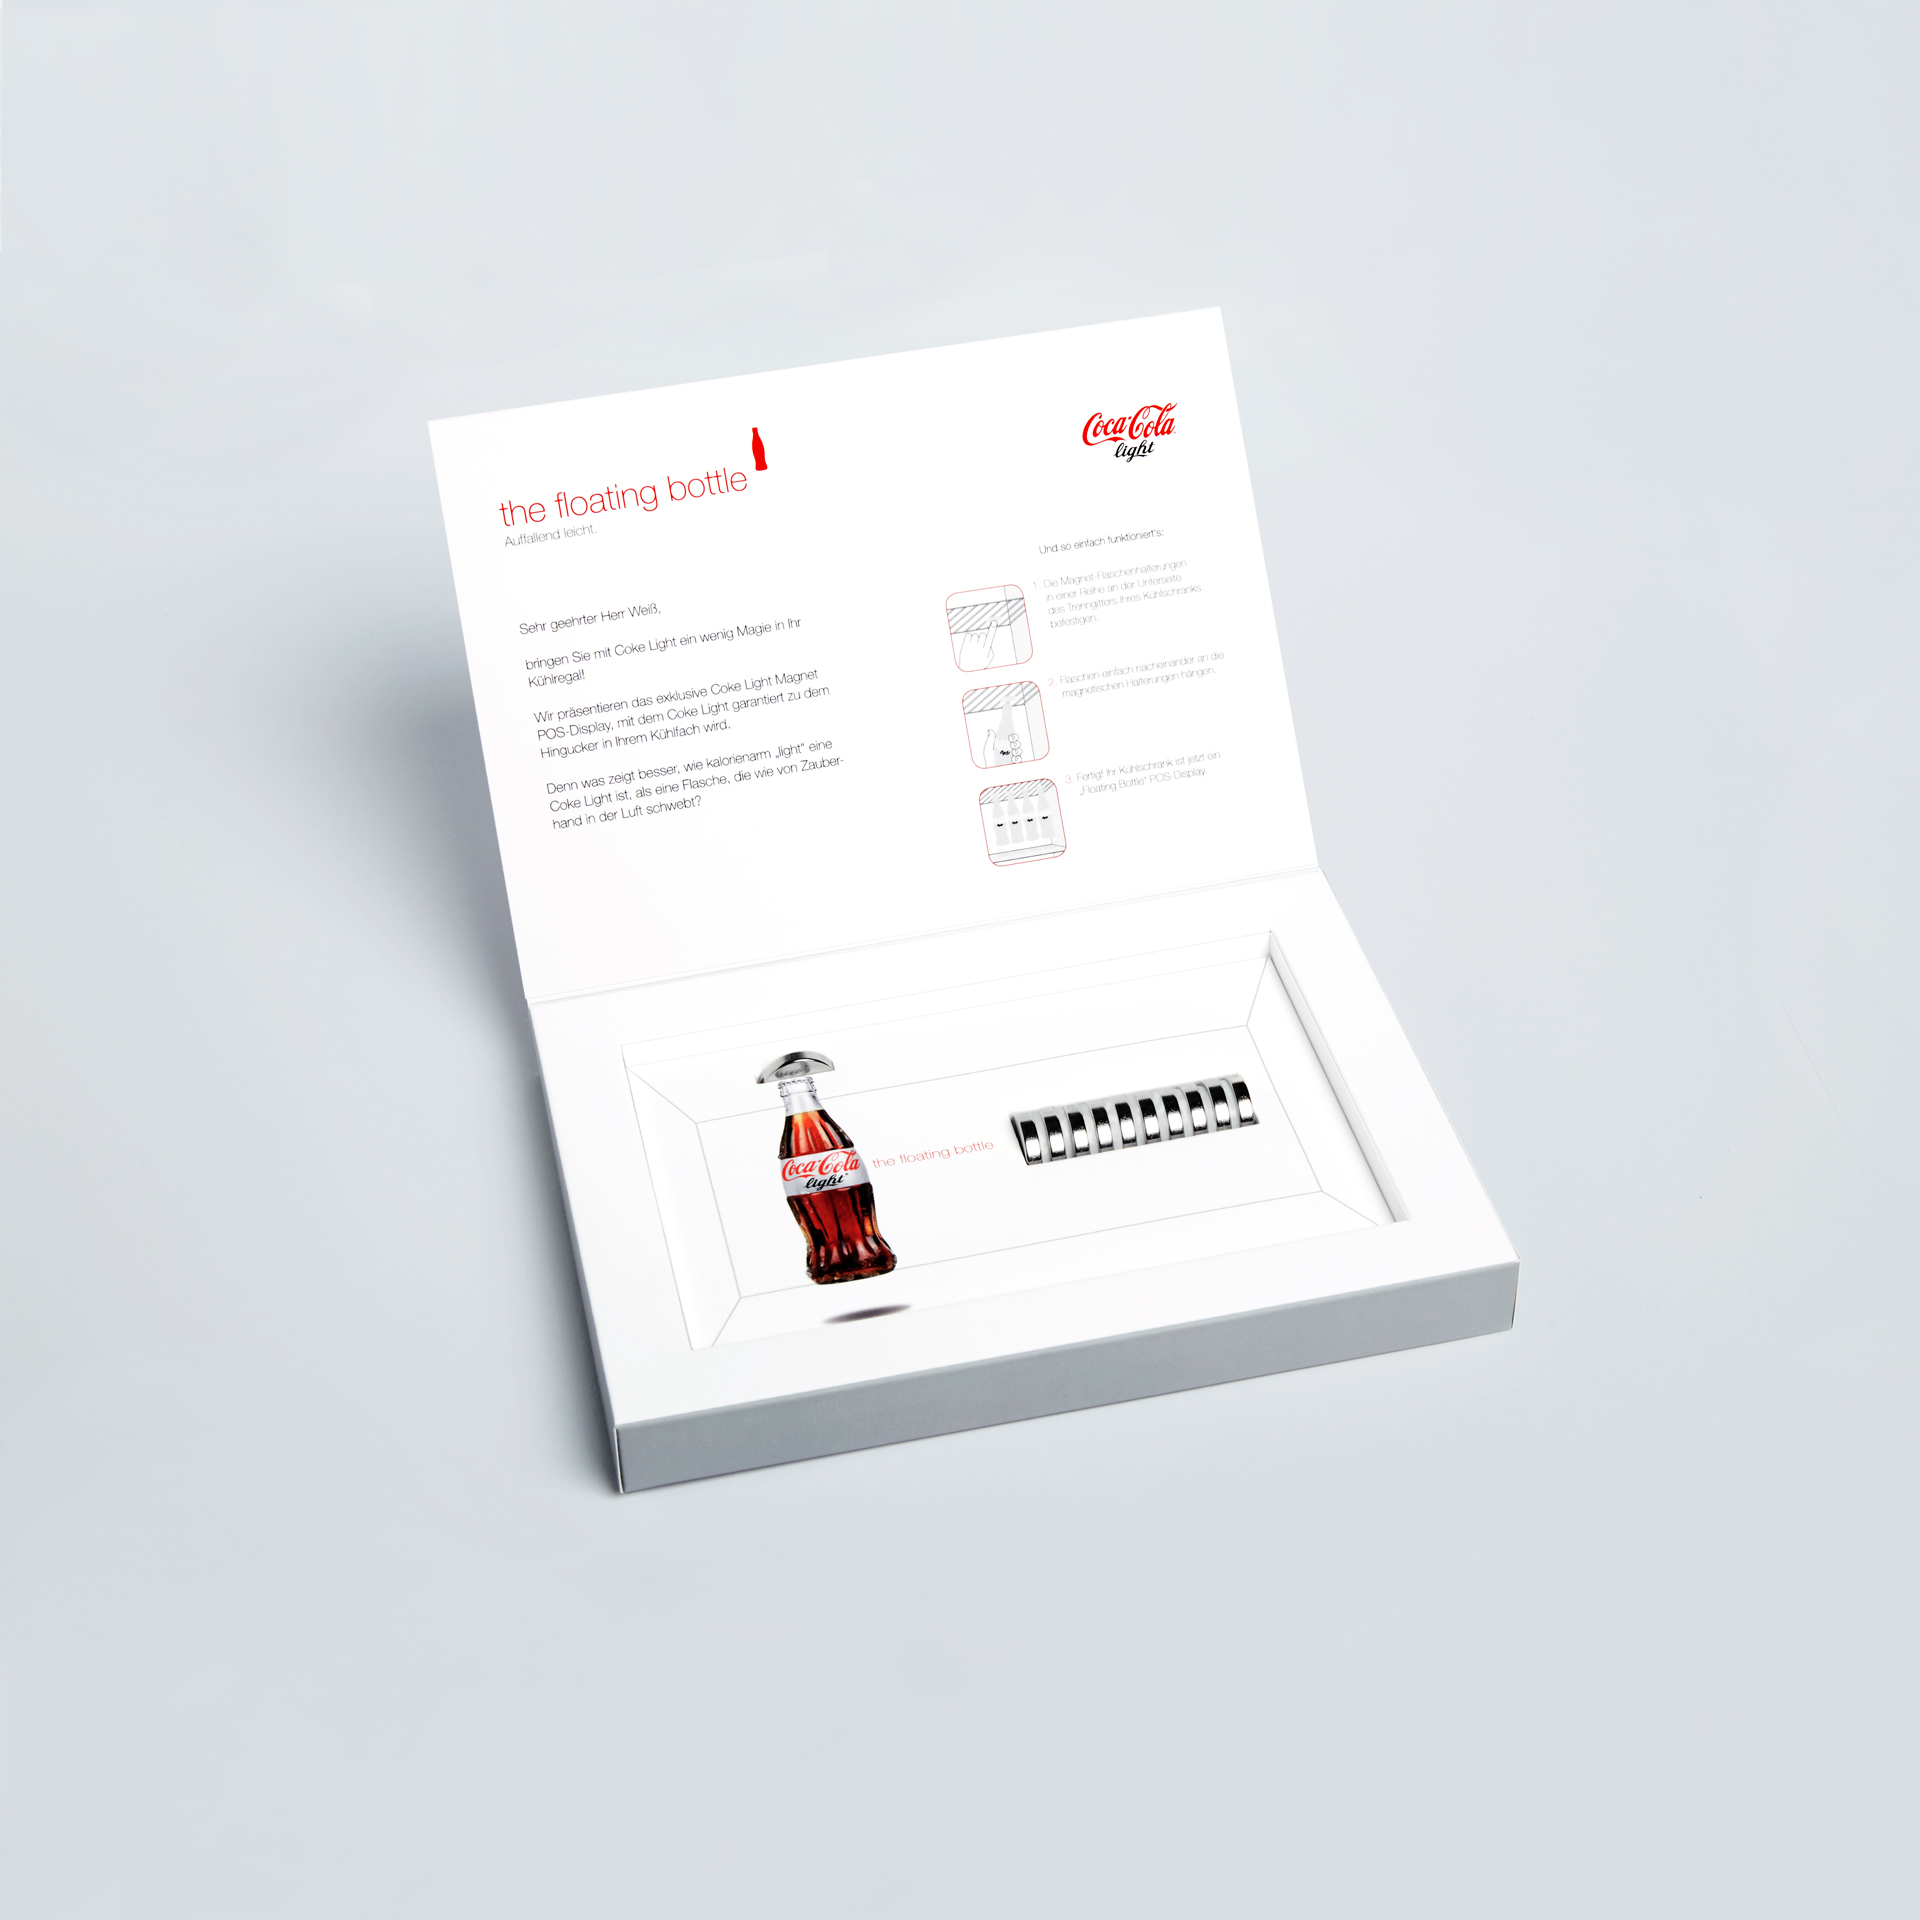 coca-cola light packaging design of mailing